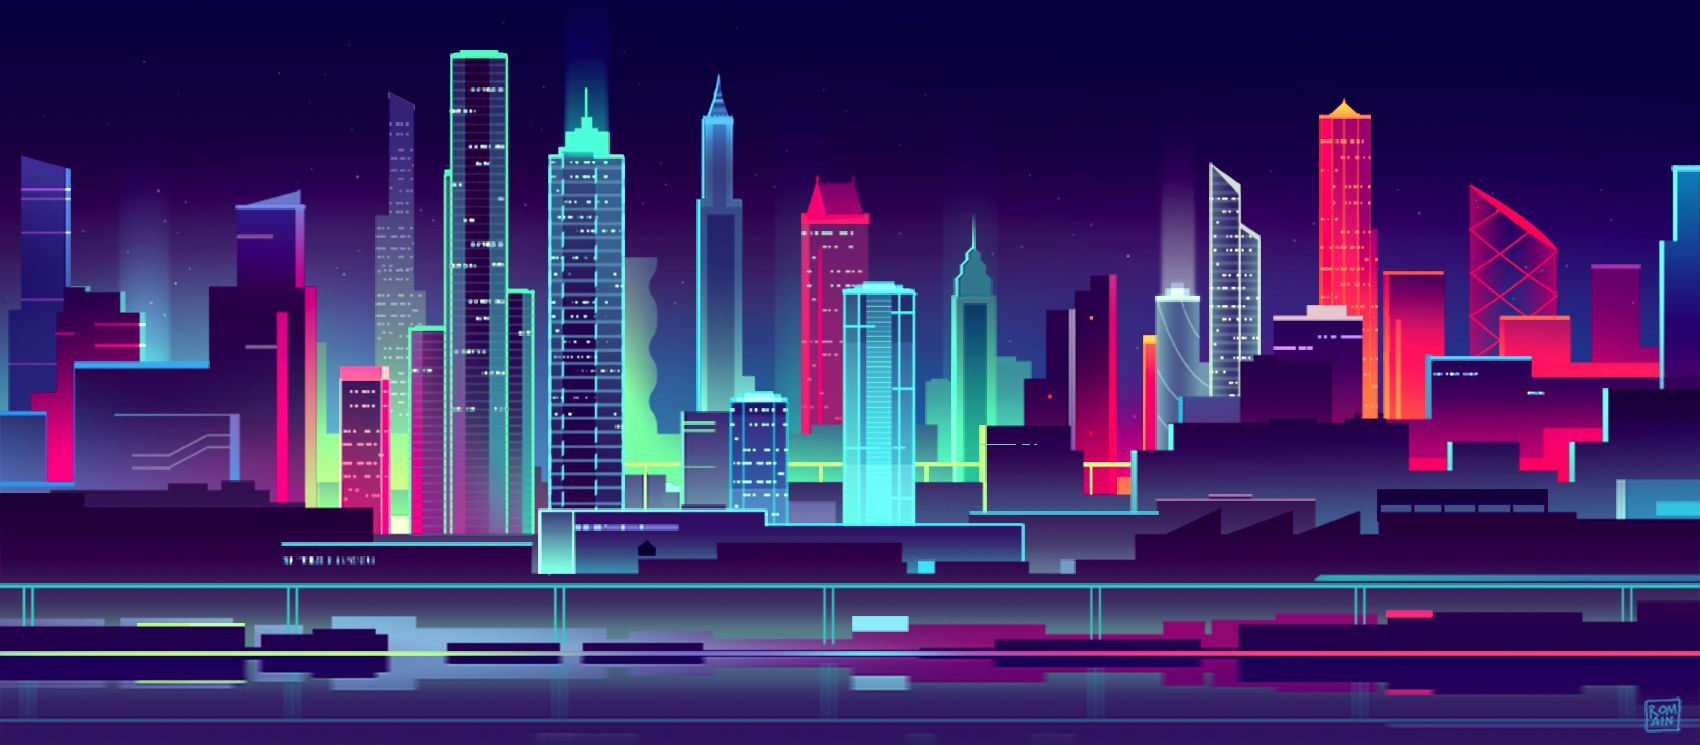 View Cityscape Vaporwave Poster Wallpapers